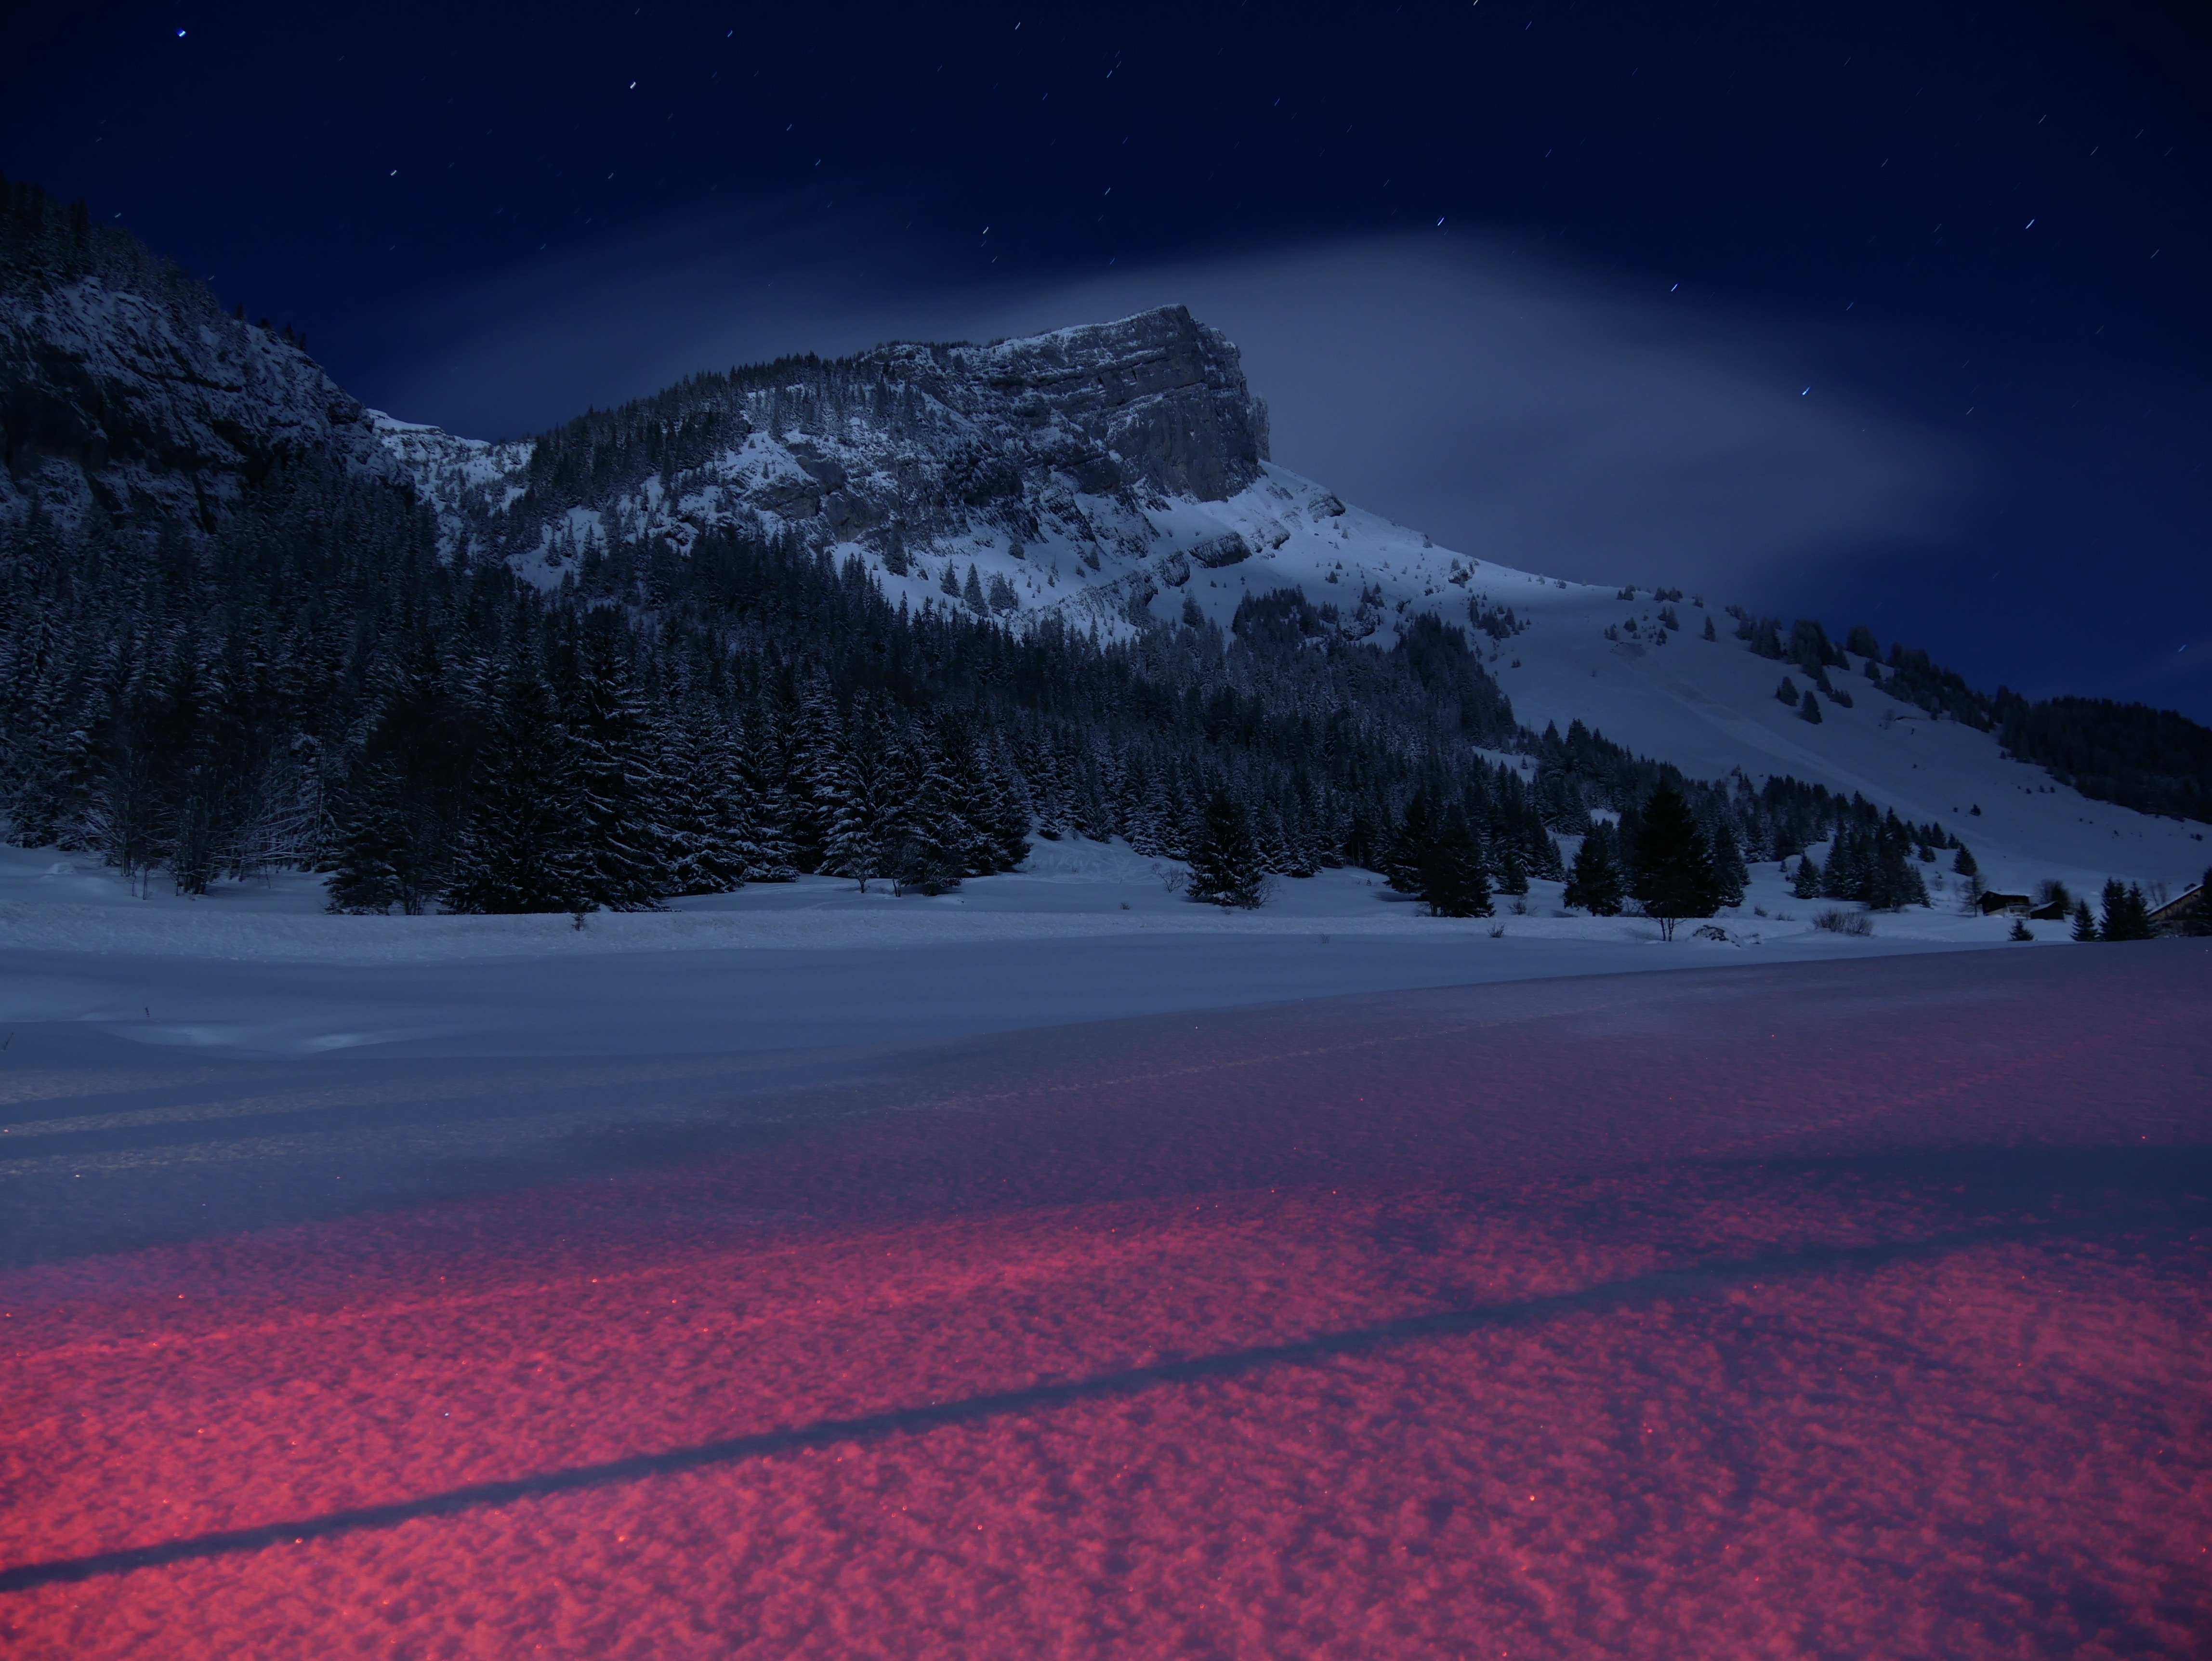 Mountains Landscape Night Snow 5k Hd Nature 4k